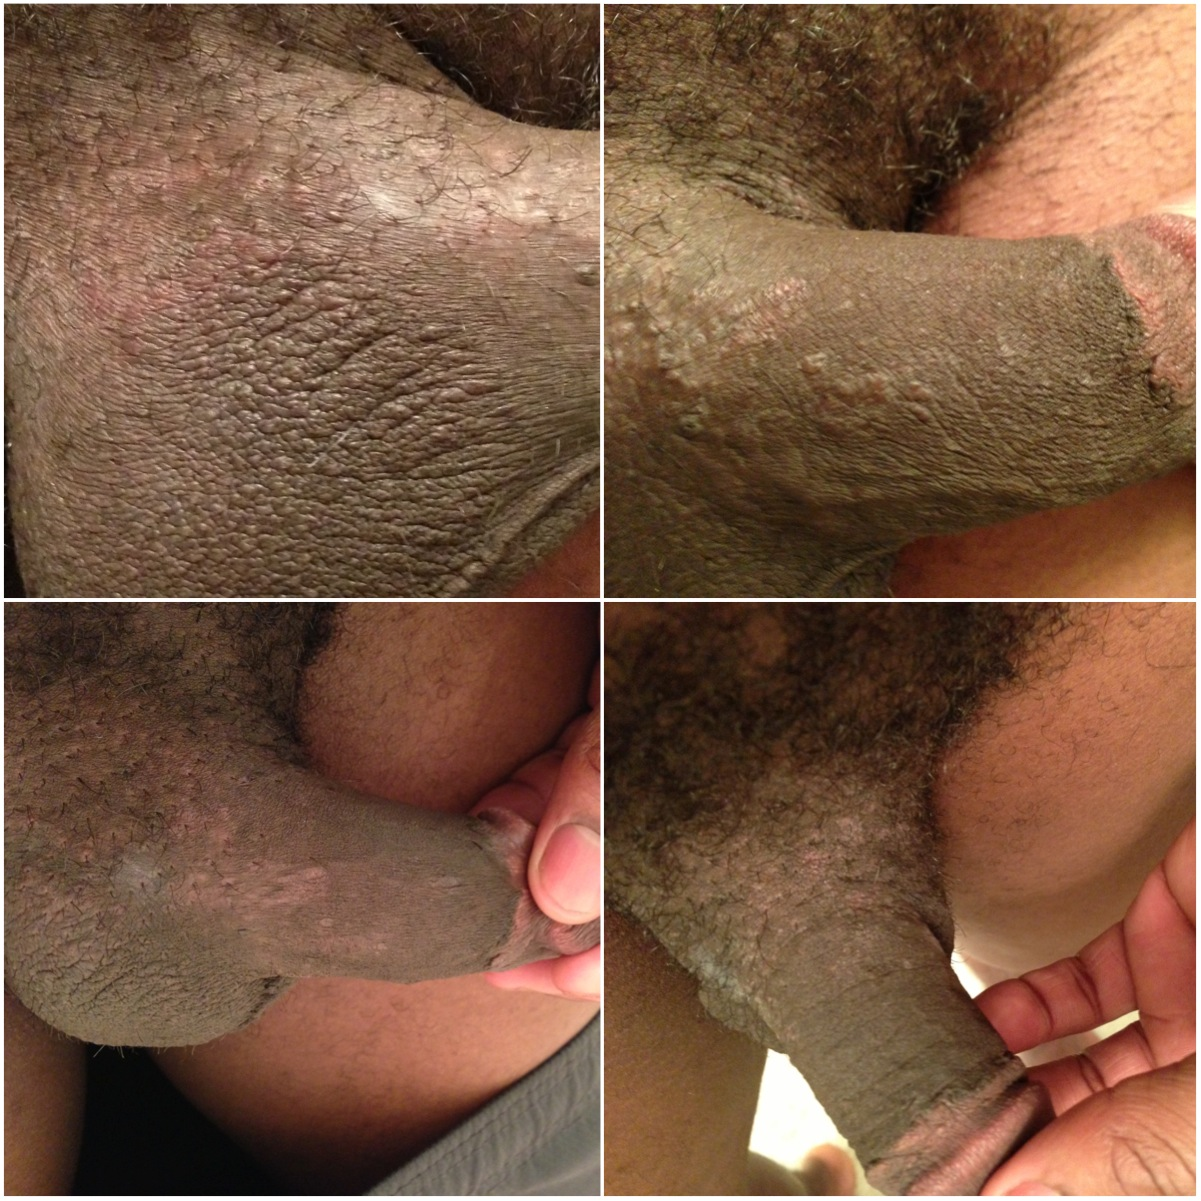 Hurts underside of penis